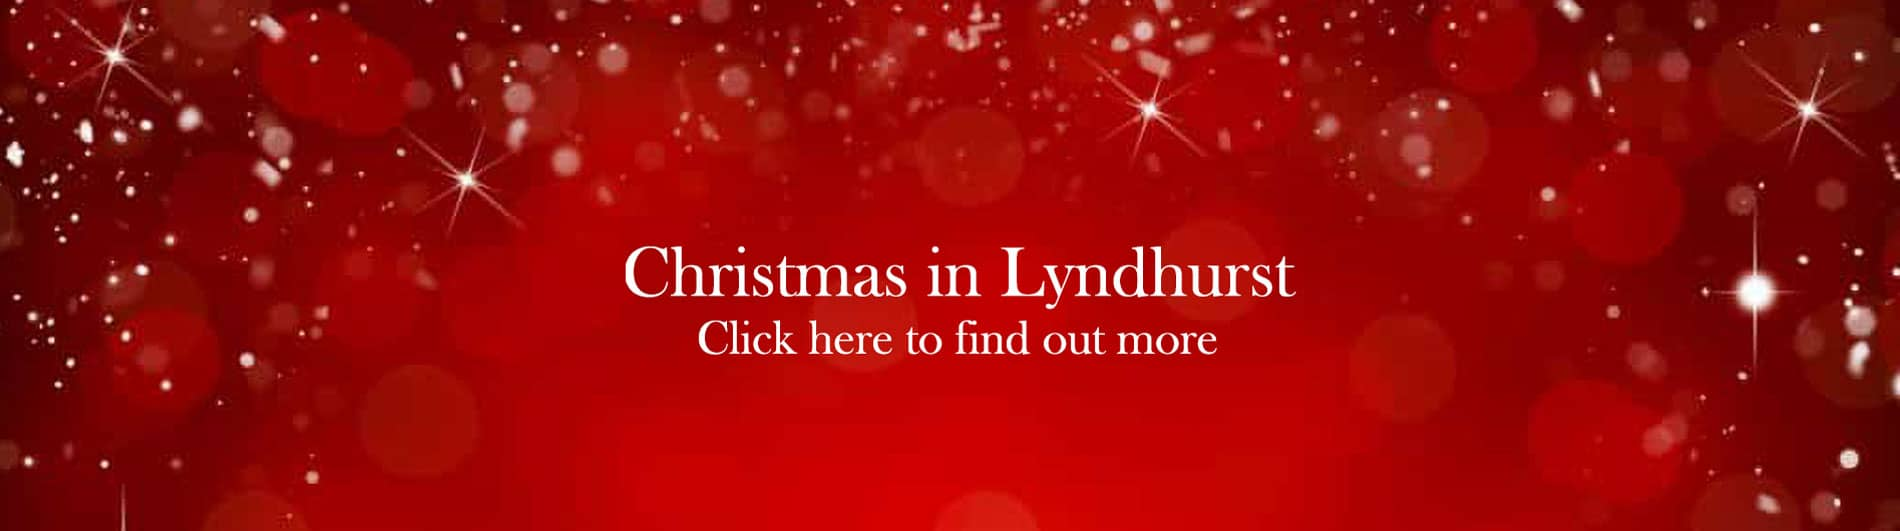 Christmas in Lyndhurst